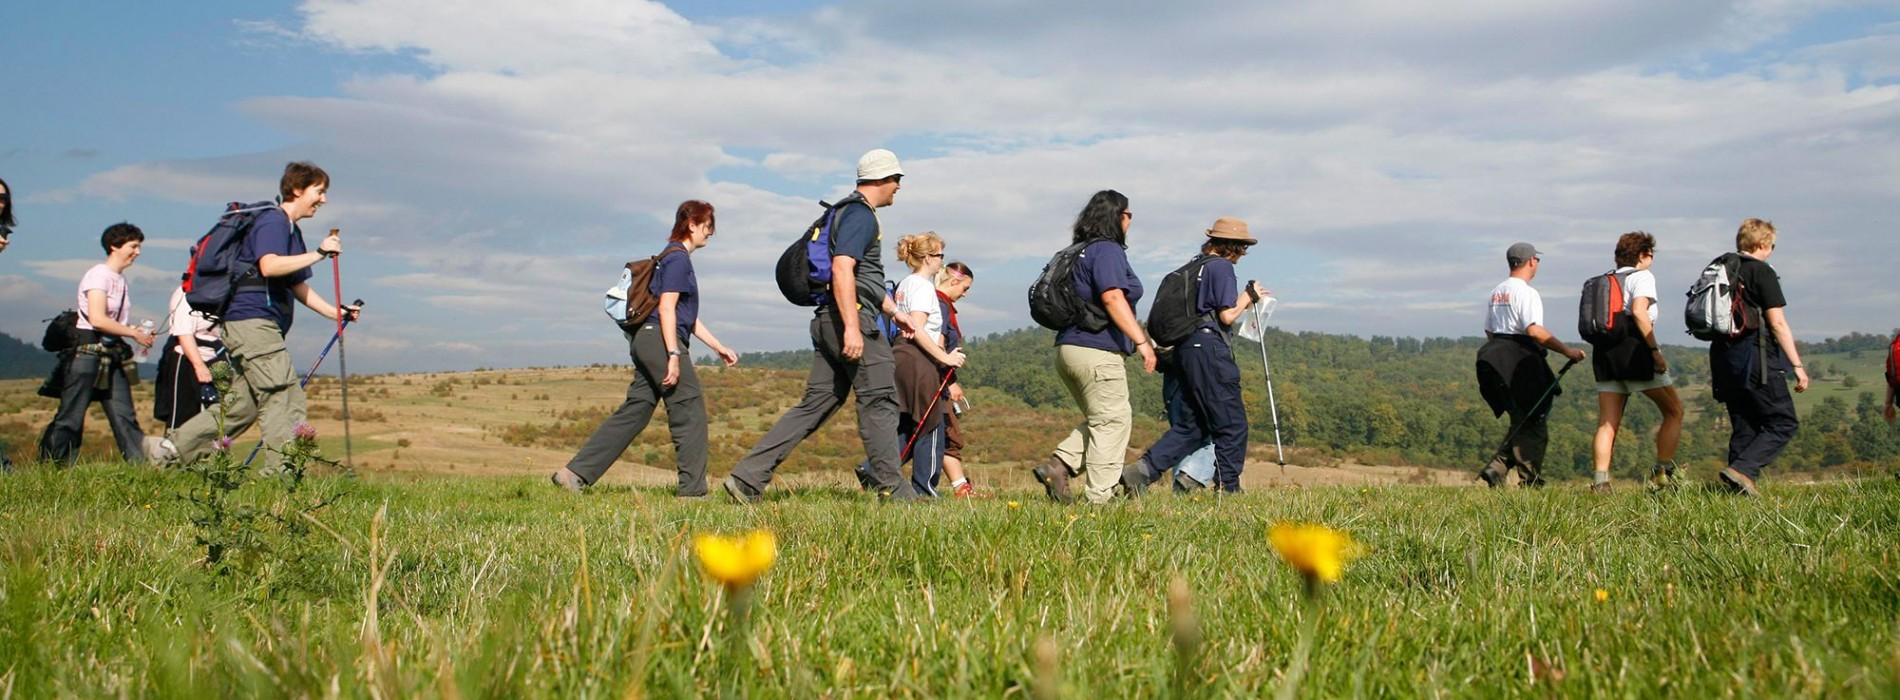 Challengers_trekking_the_South_Downs_for_charity.jpg